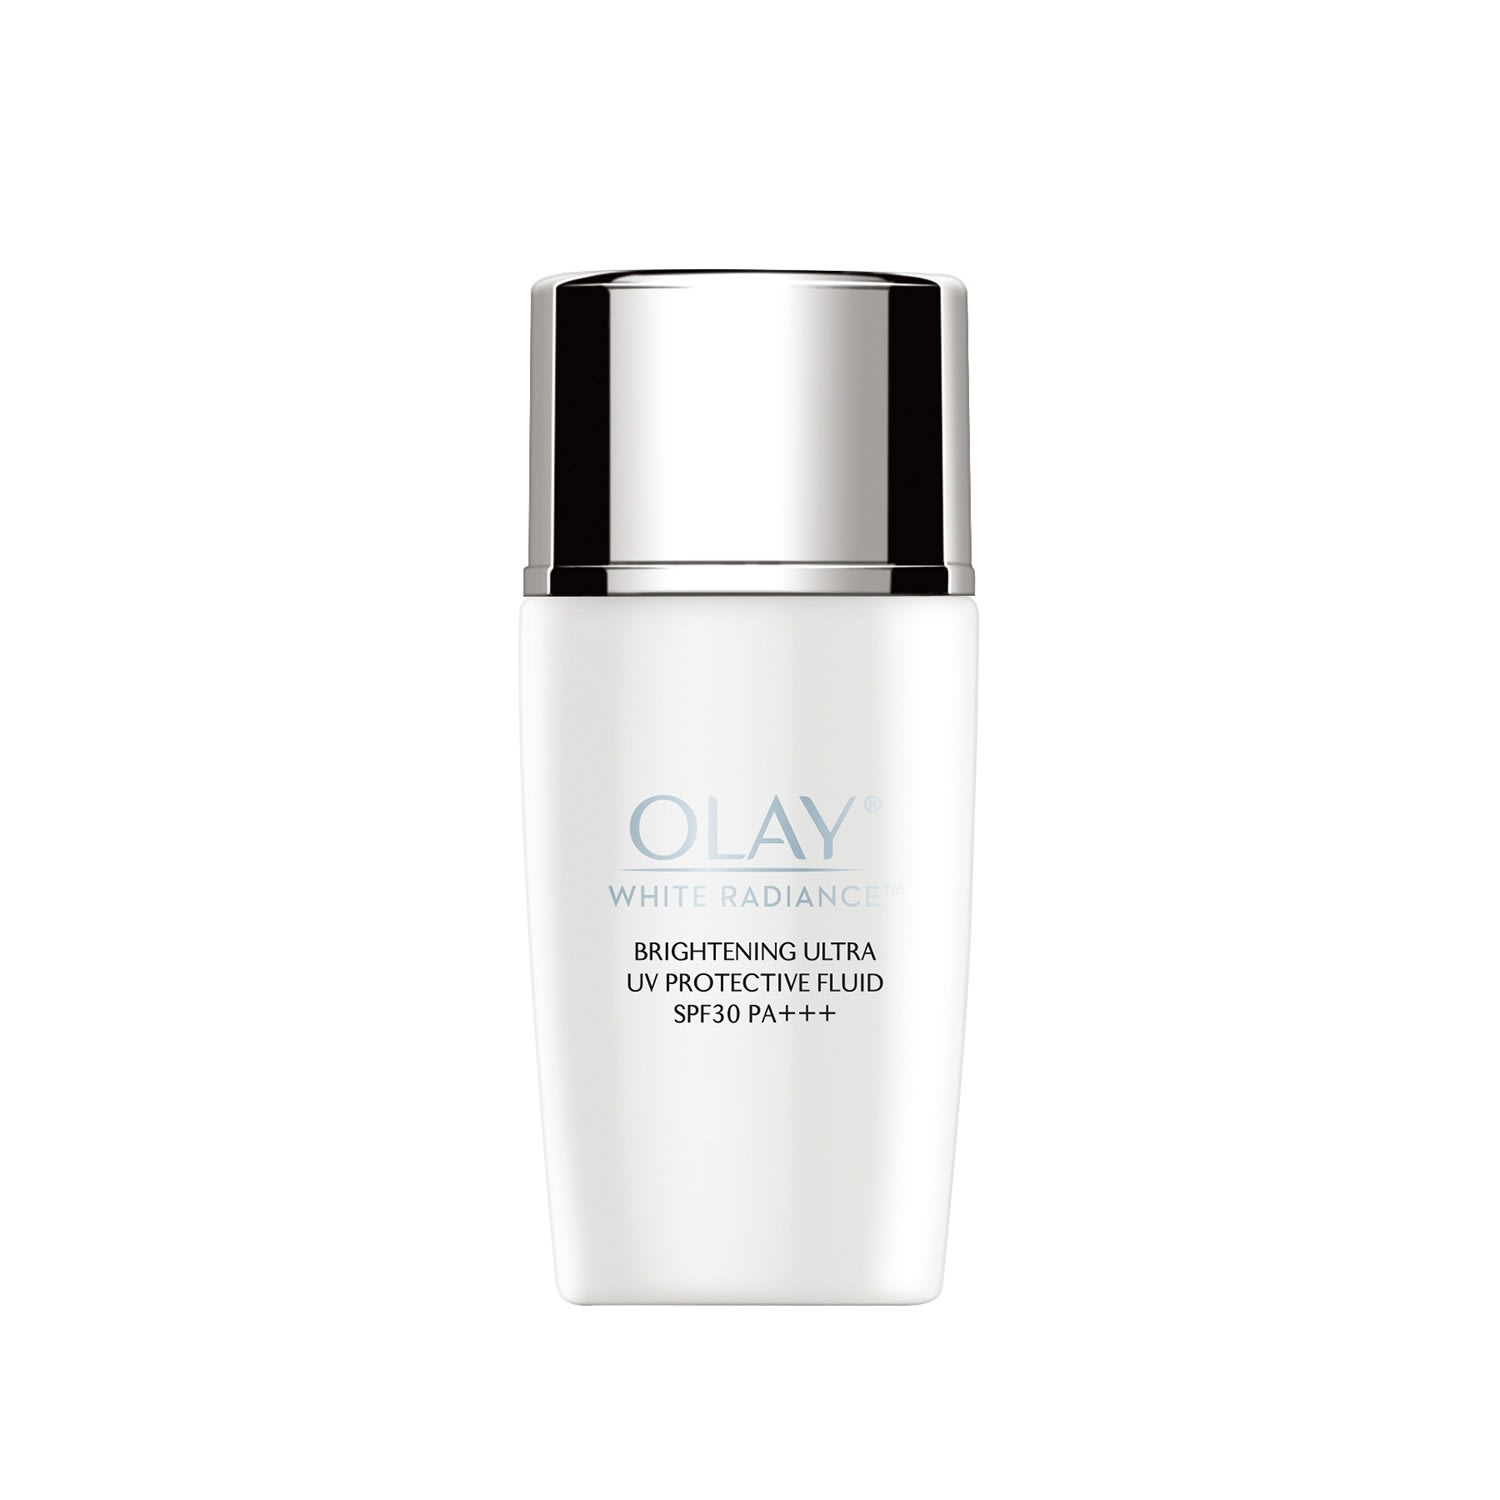 OLAY WR Ultra UV Protective Fluid 40ml (SPF30 PA+++)